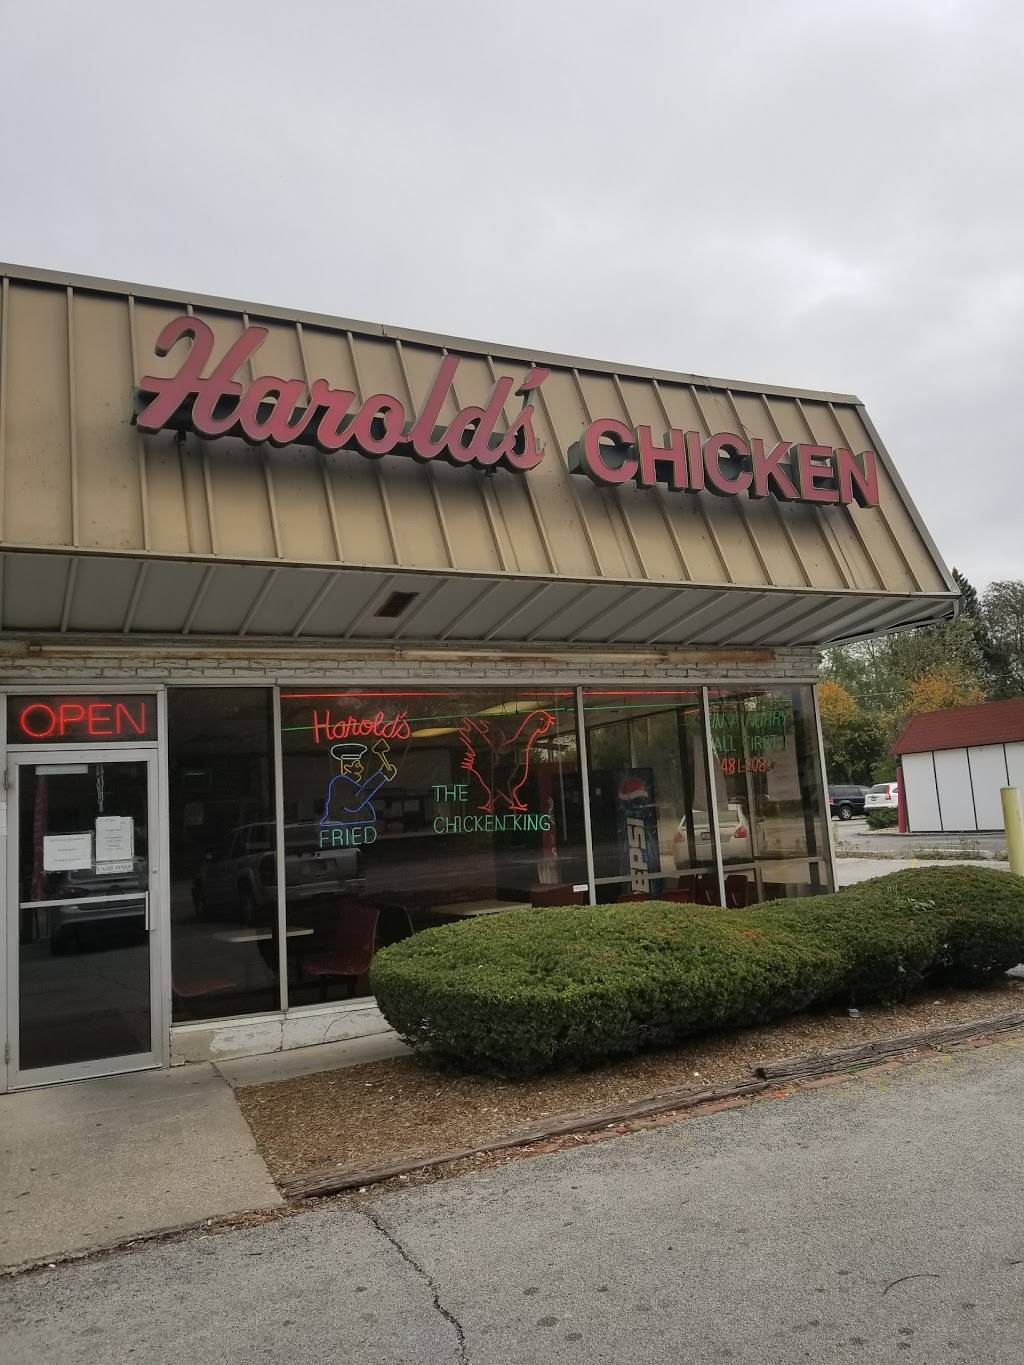 Harolds Chicken Shack | restaurant | 1537 Western Ave, Chicago Heights, IL 60411, USA | 7084817080 OR +1 708-481-7080